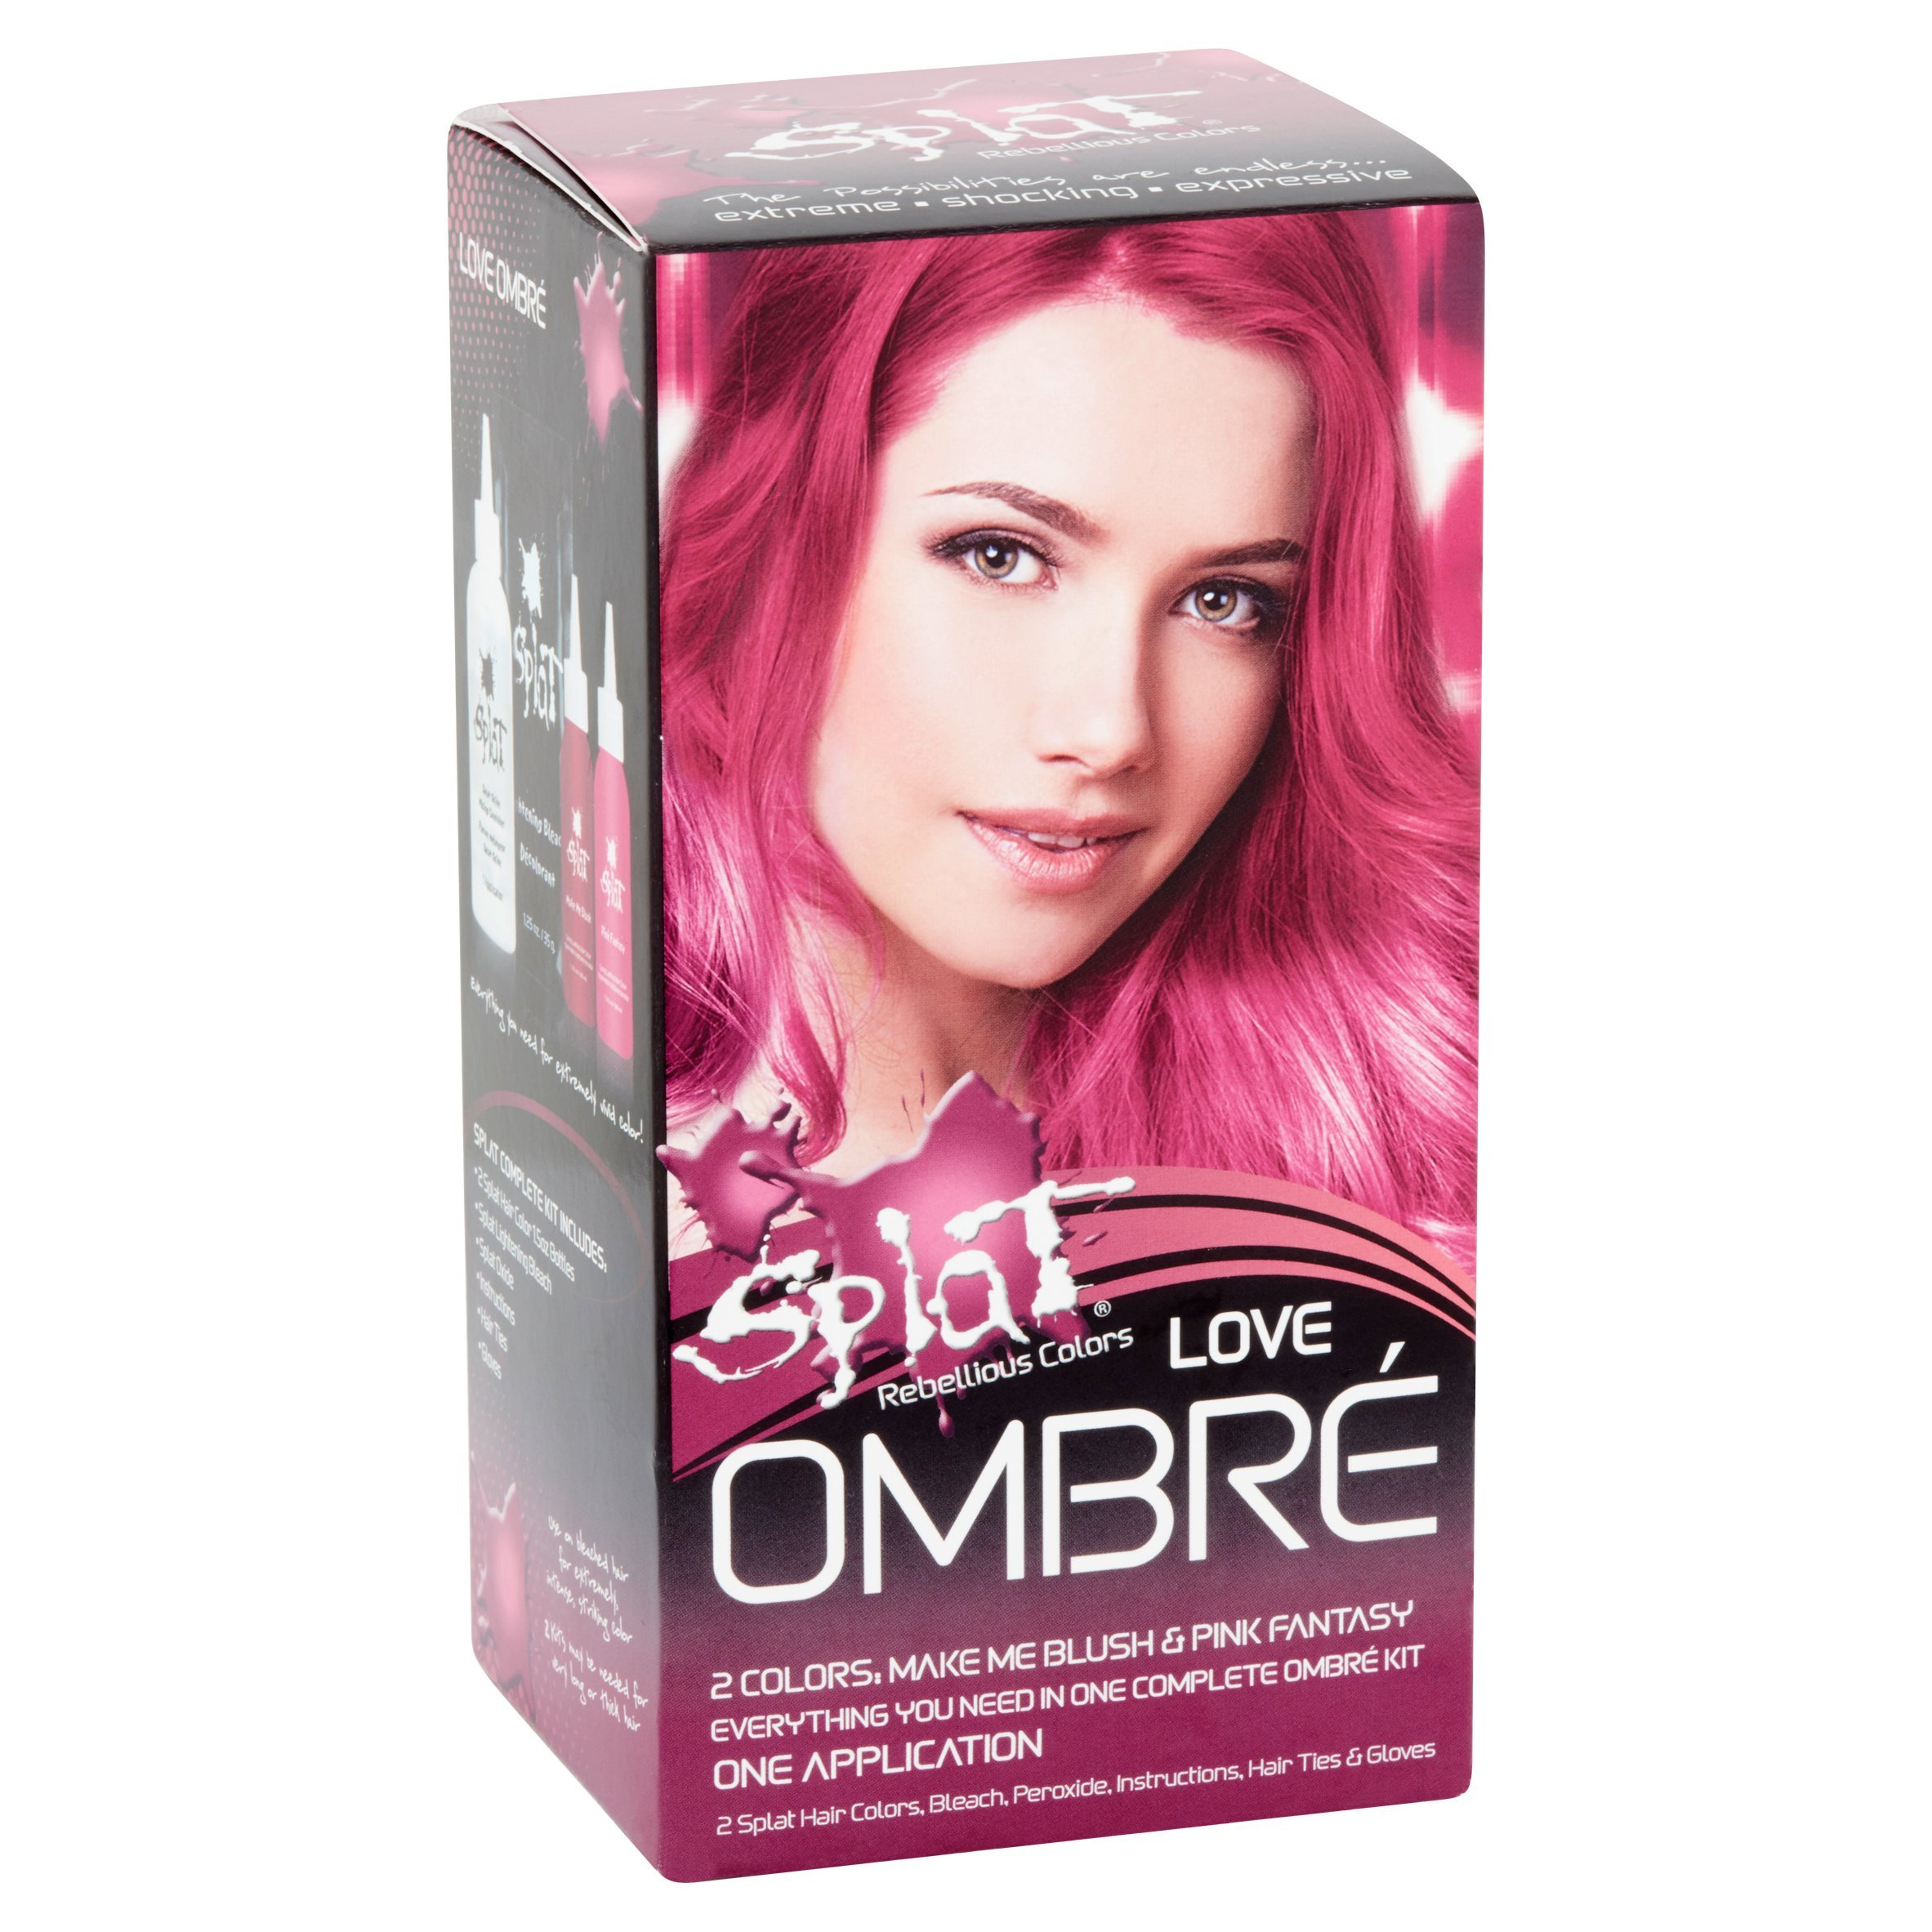 Amazon.com : Splat Rebellious Colors Hair Coloring Complete Kit Rain ...